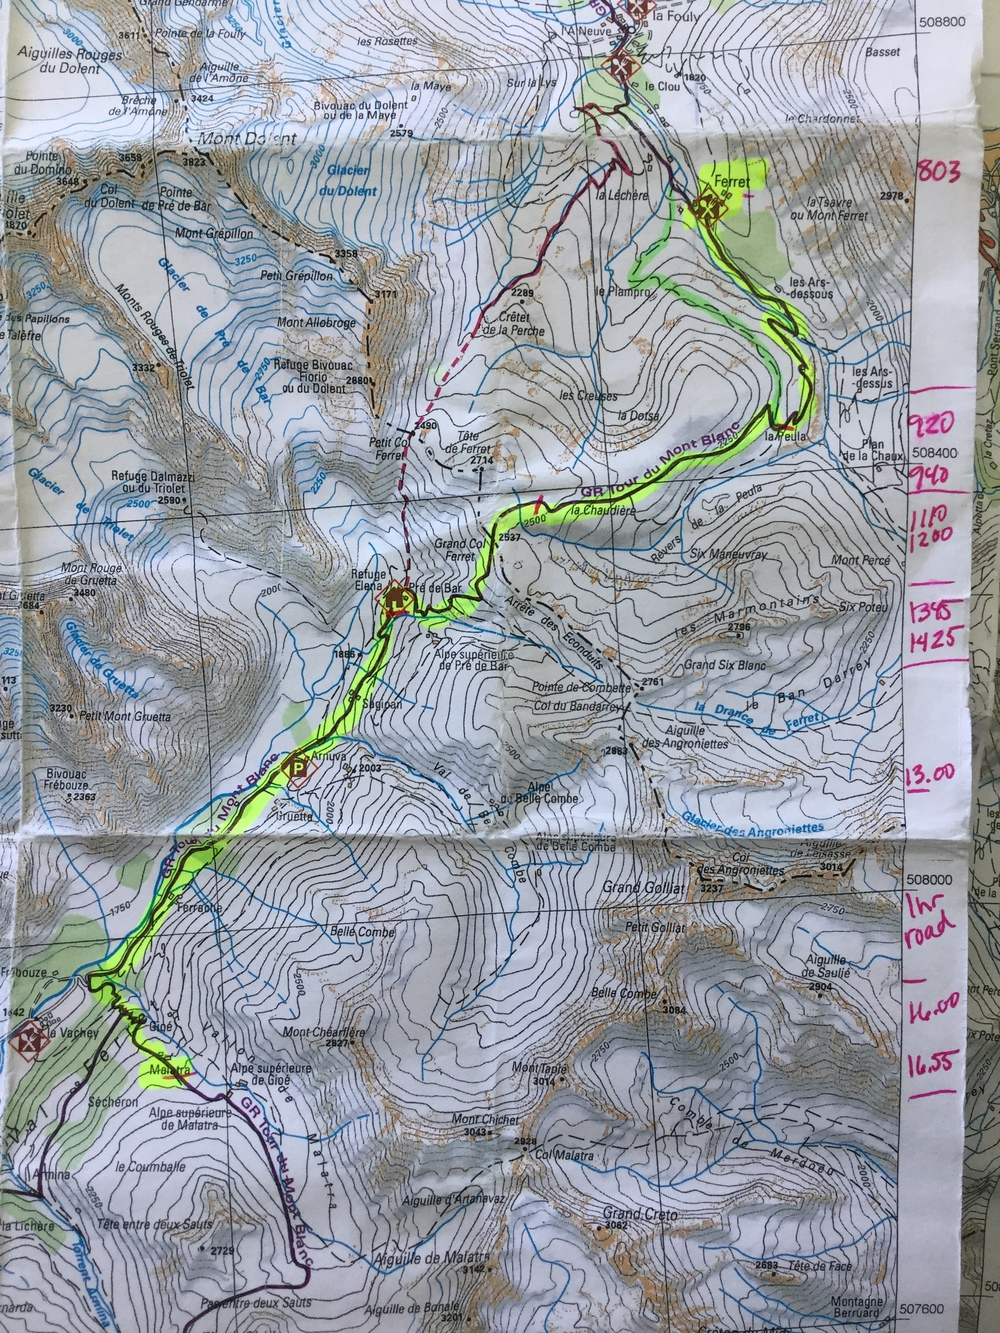 Our trail map. I copied all of our days into reasonable sizes, this also helps to keep the original map nice. You can see my marks on the side, this is my time tracking.